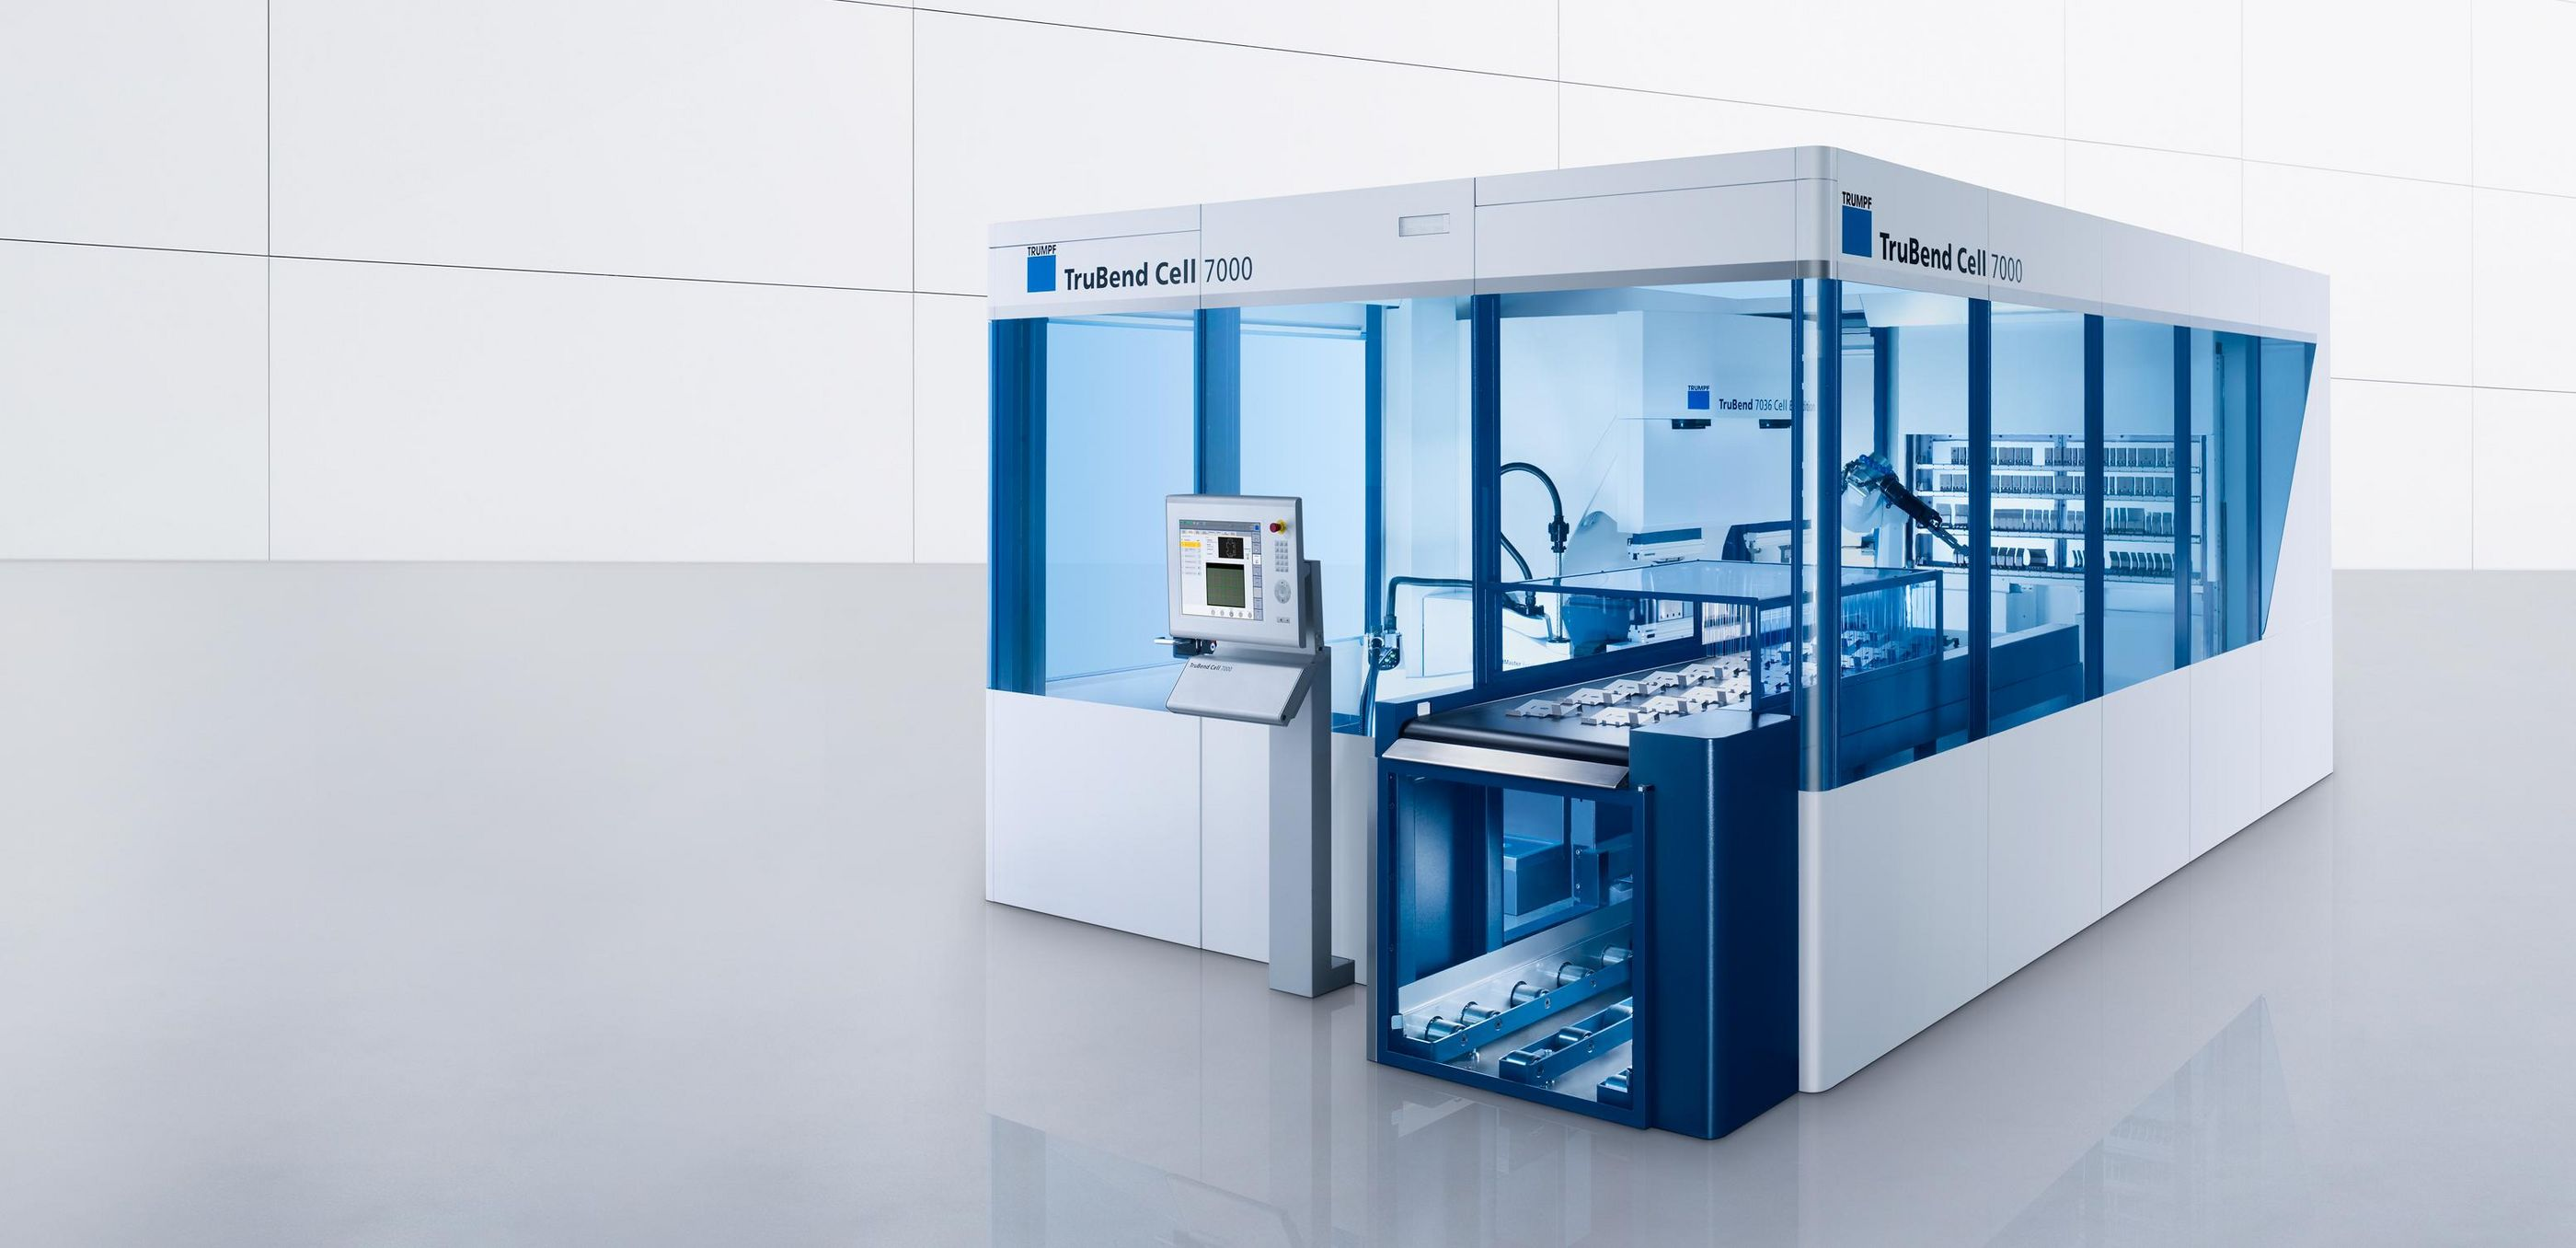 TruBend Cell 7000, an innovative high-speed bending cell